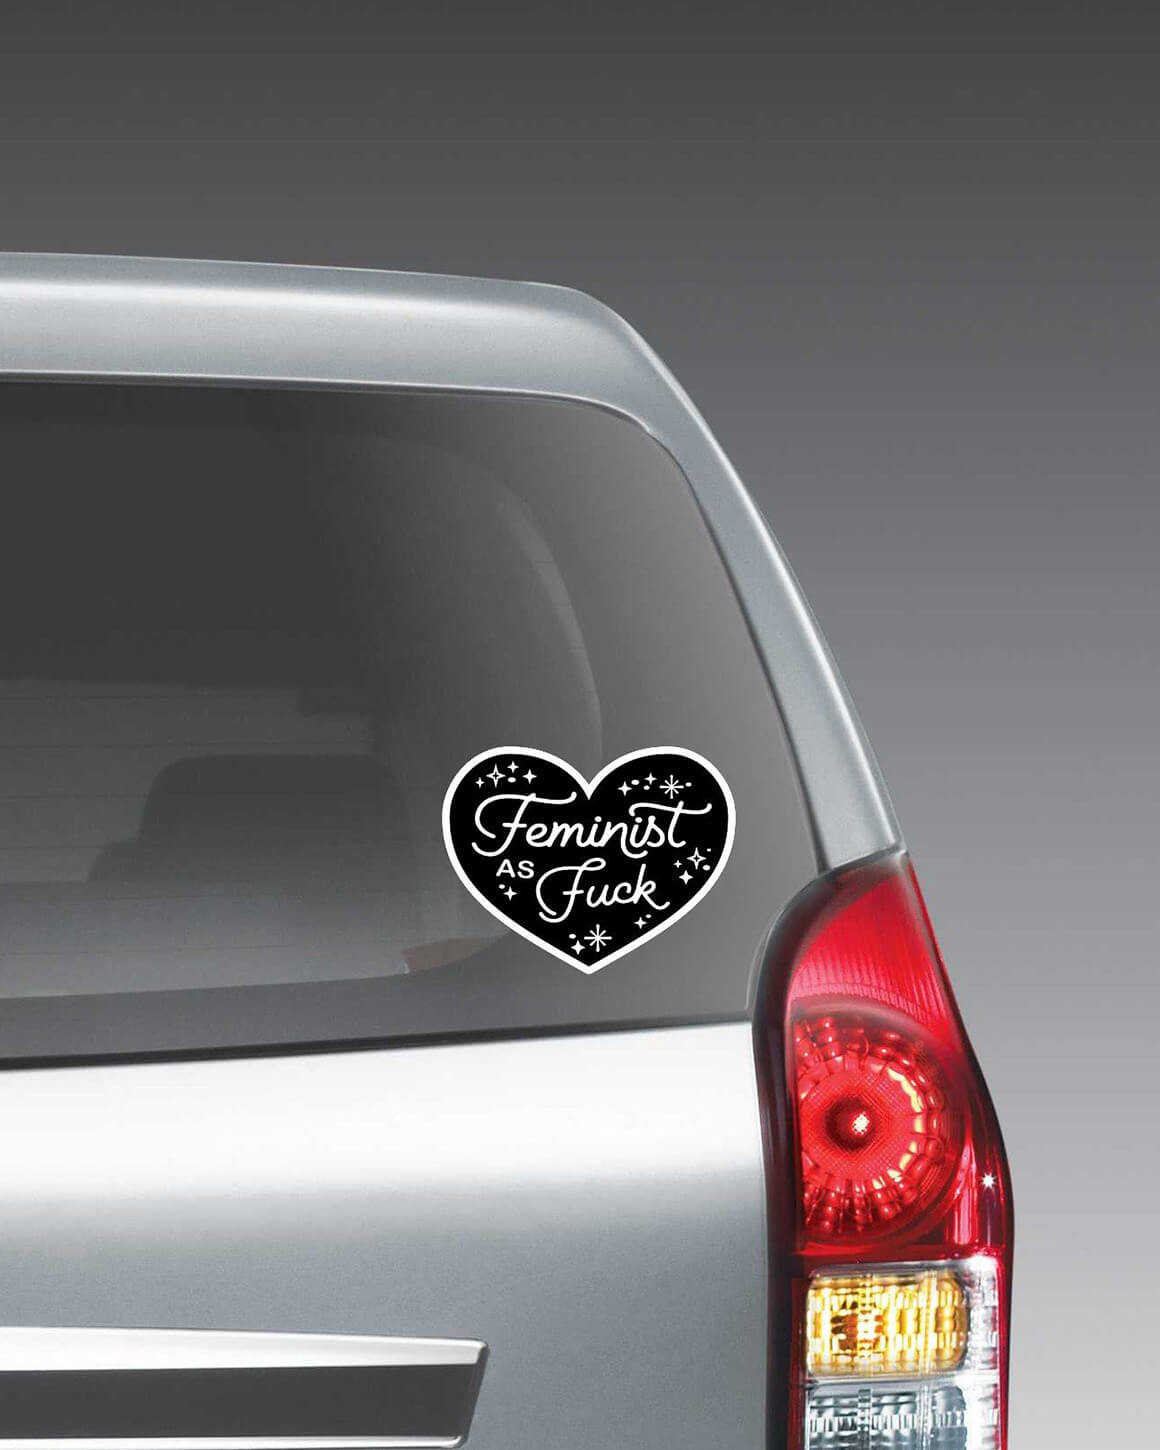 Black feminist car decal in a heart shape with the phrase Feminist as Fuck